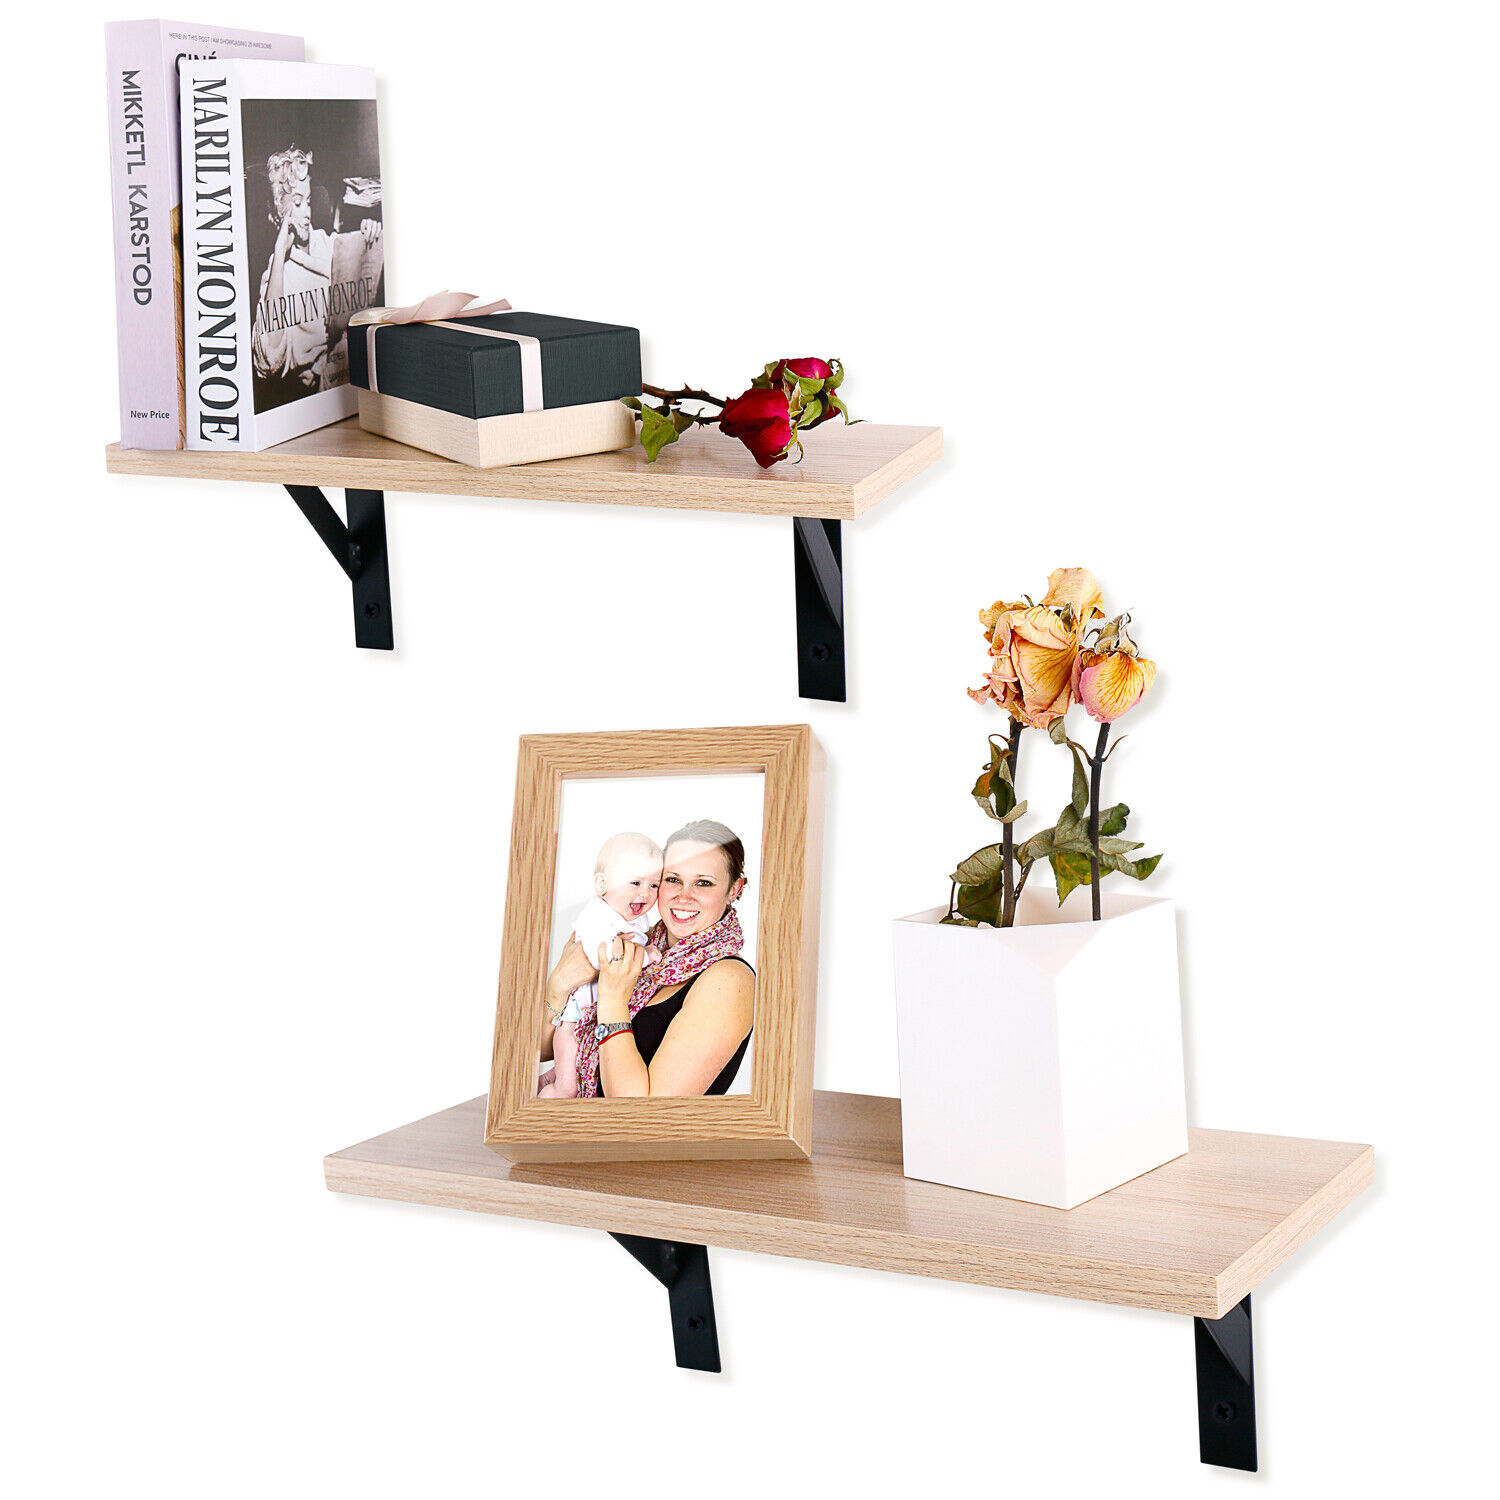 Floating Shelves Wall Mounted, Set of 2, White Maple Wall Sh